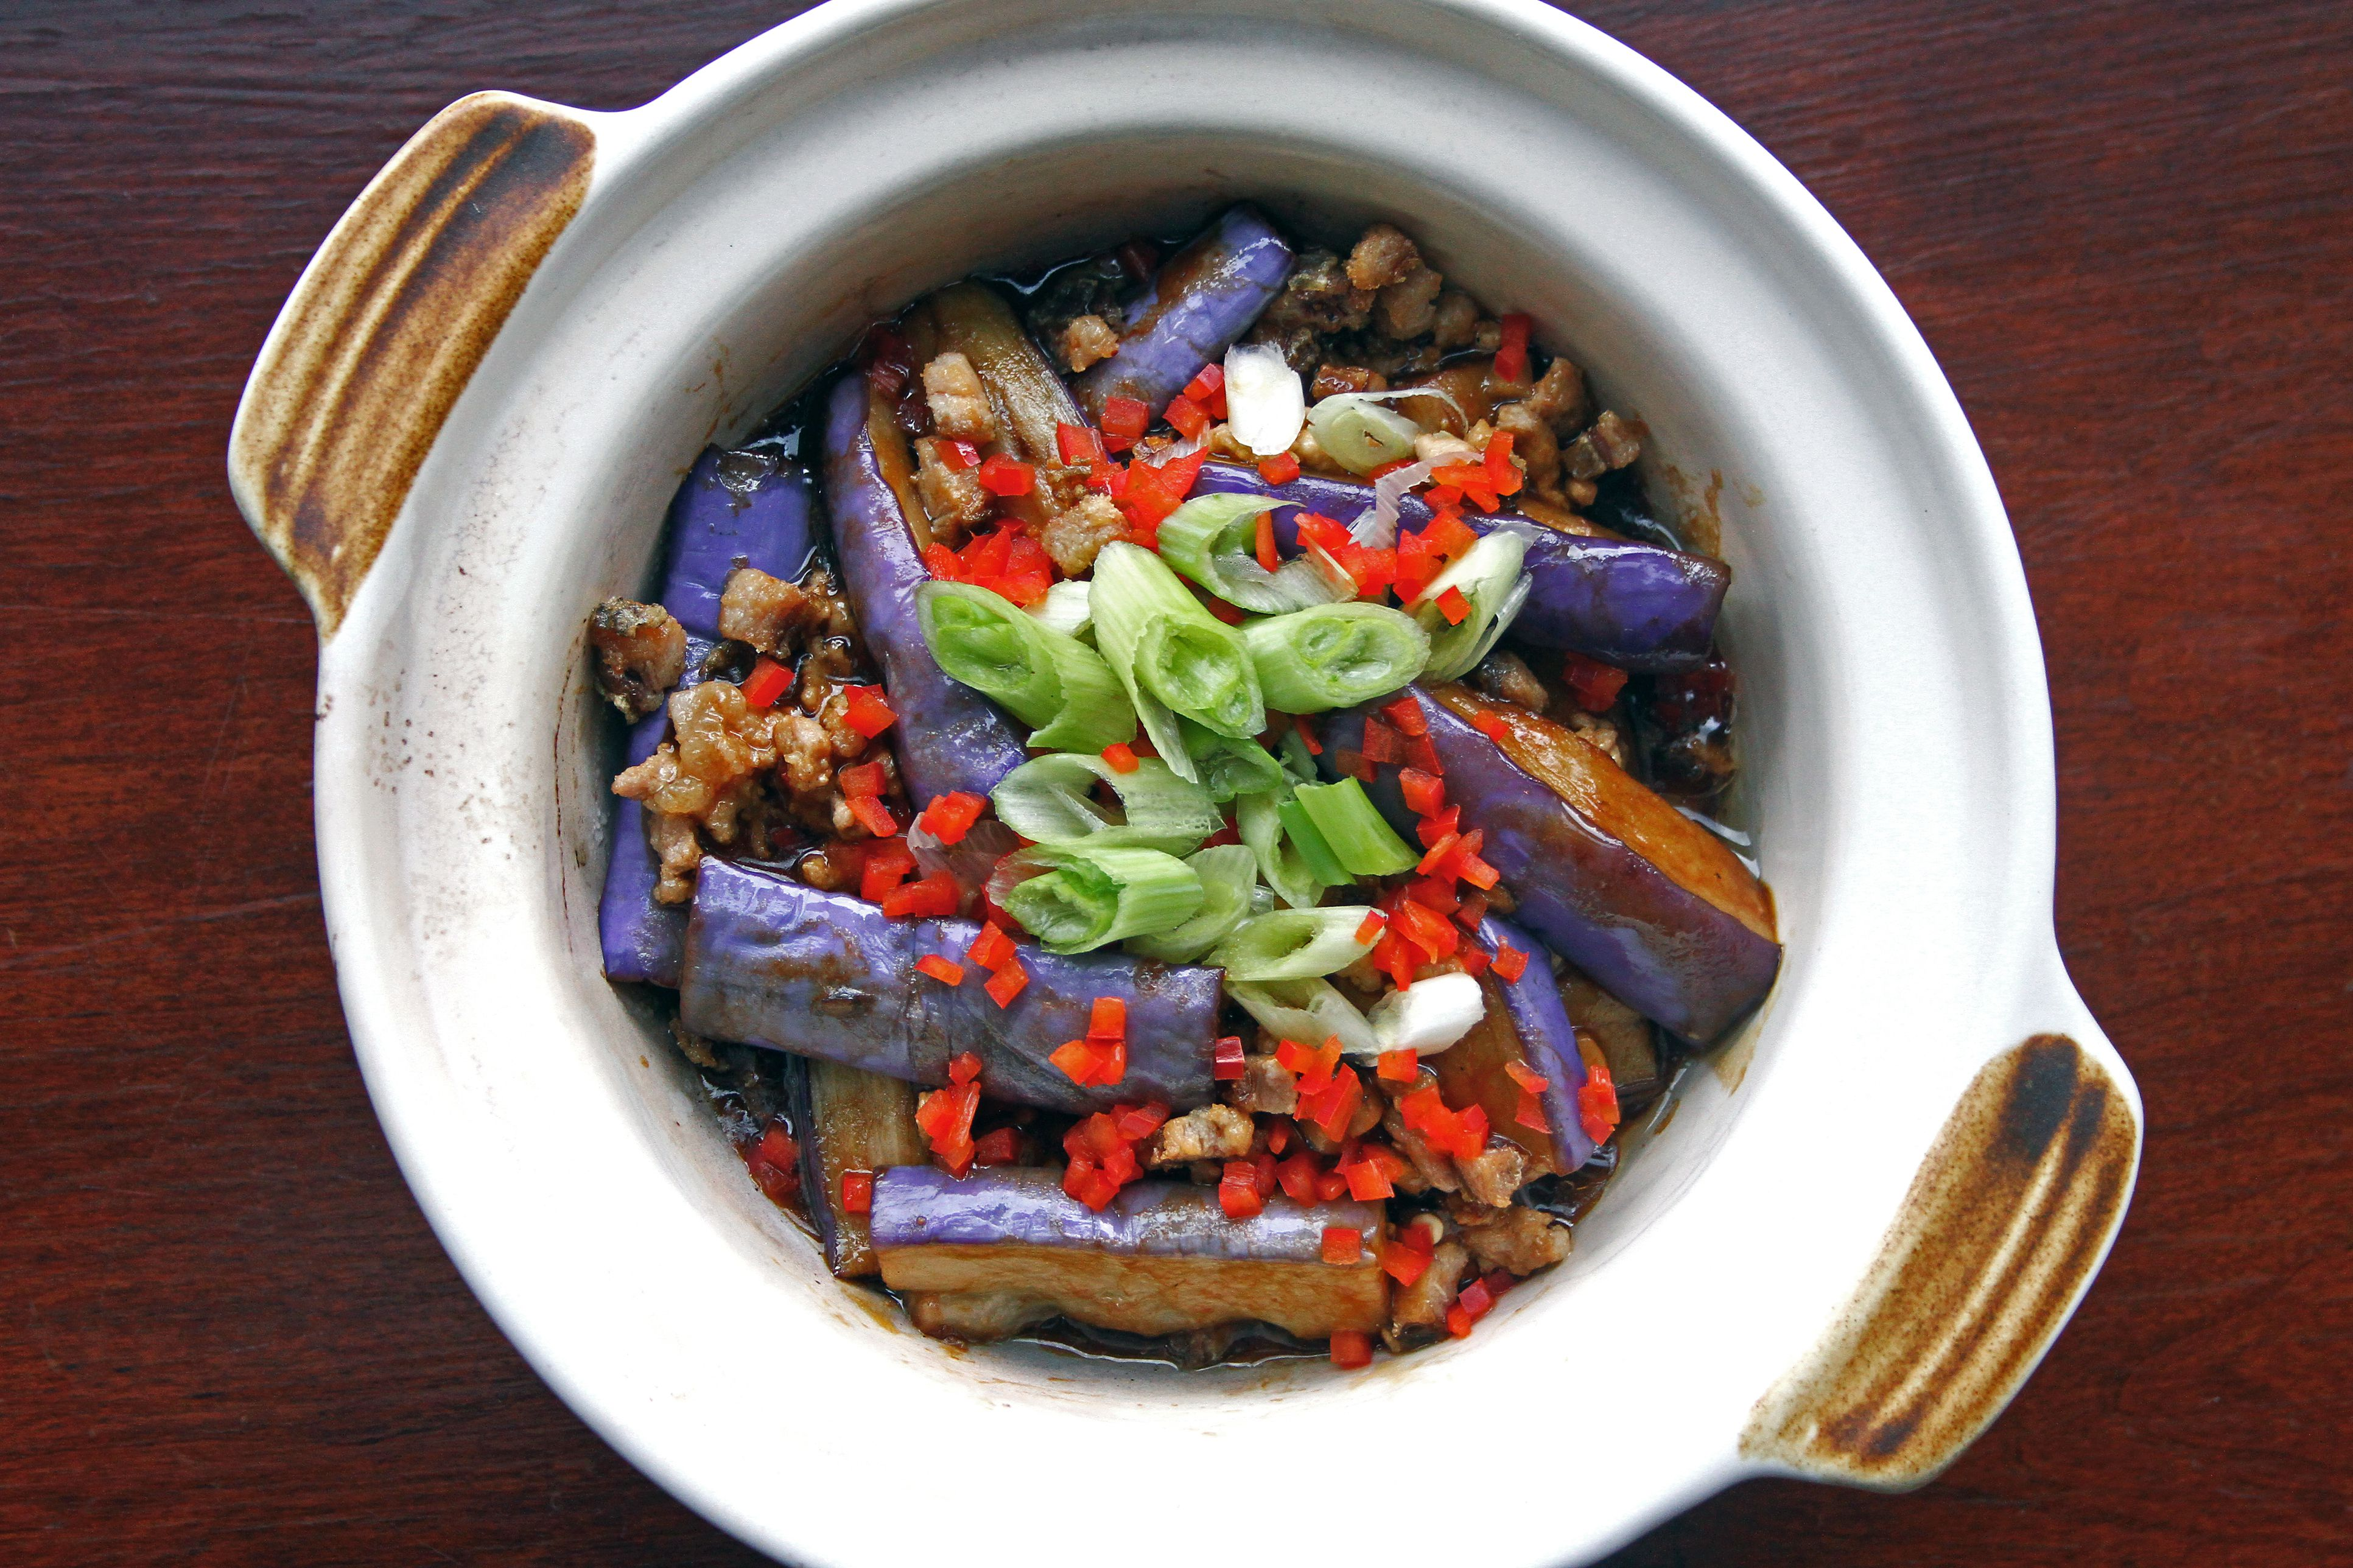 Chinese cuisine, braised eggplant and minced pork